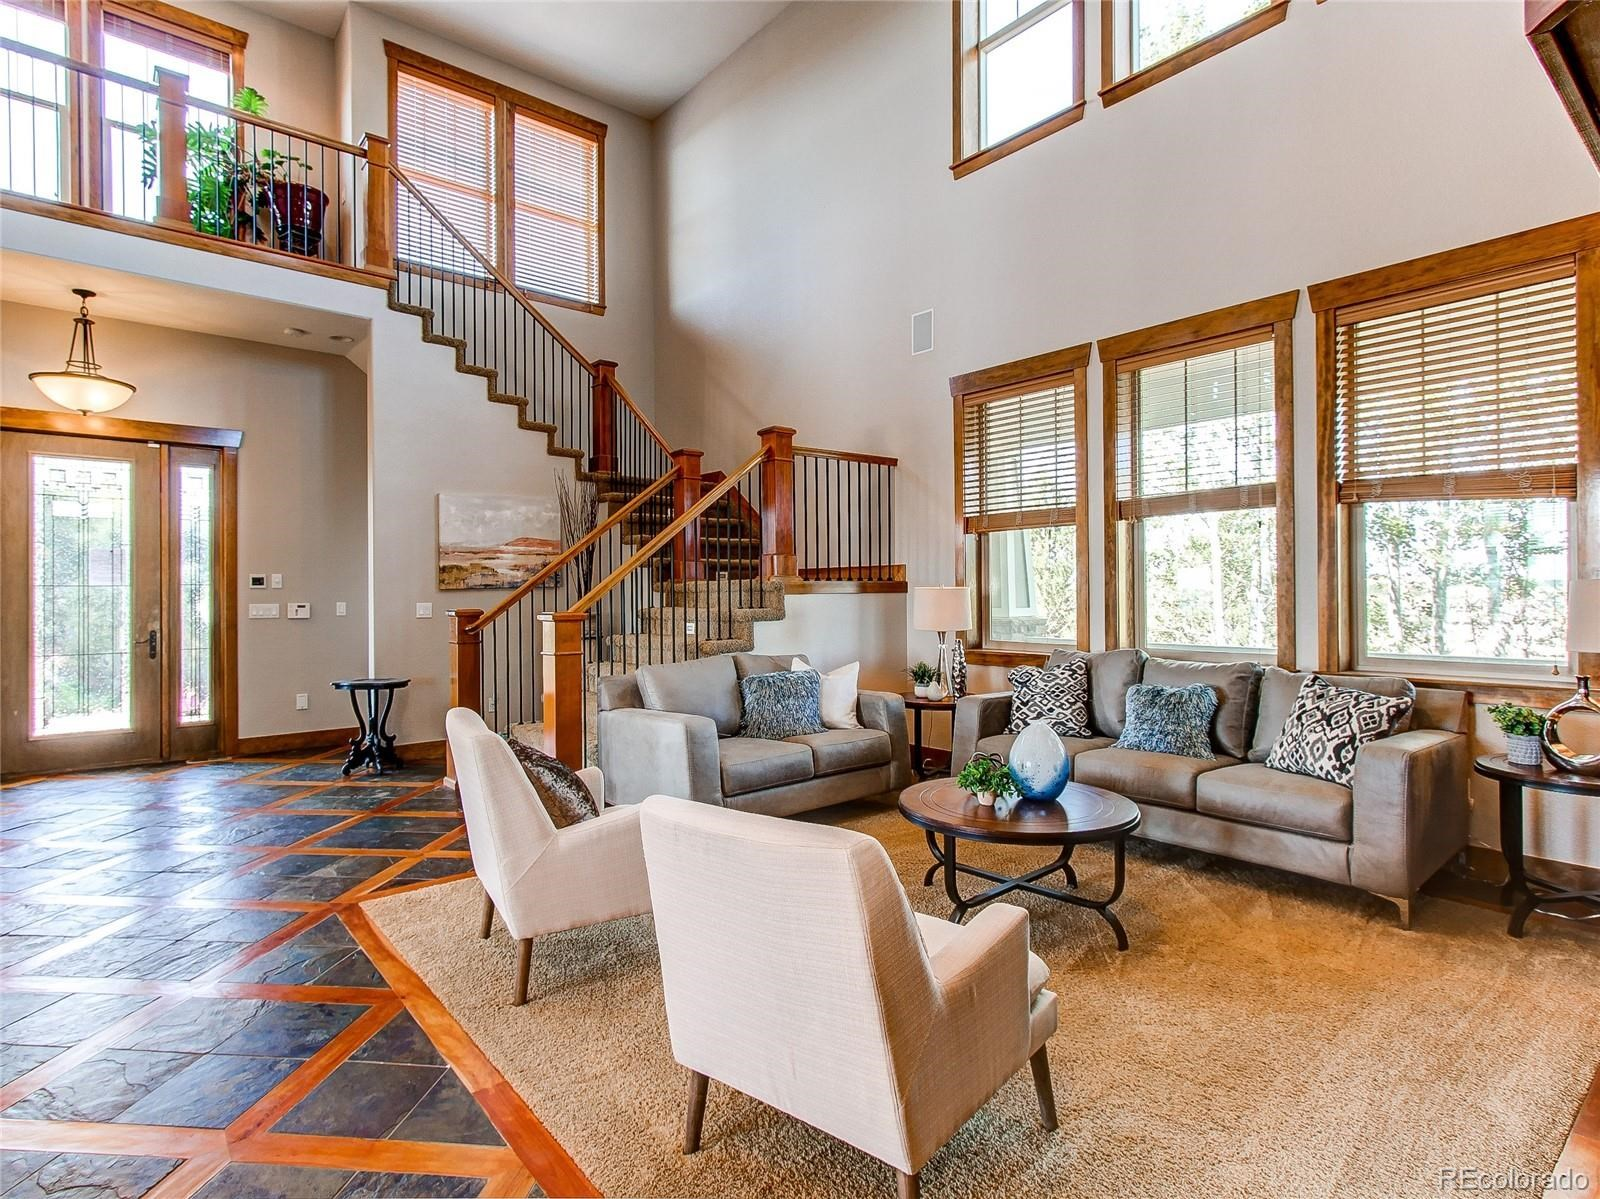 MLS# 4009651 - 7 - 33610 Tribute Circle, Elizabeth, CO 80107